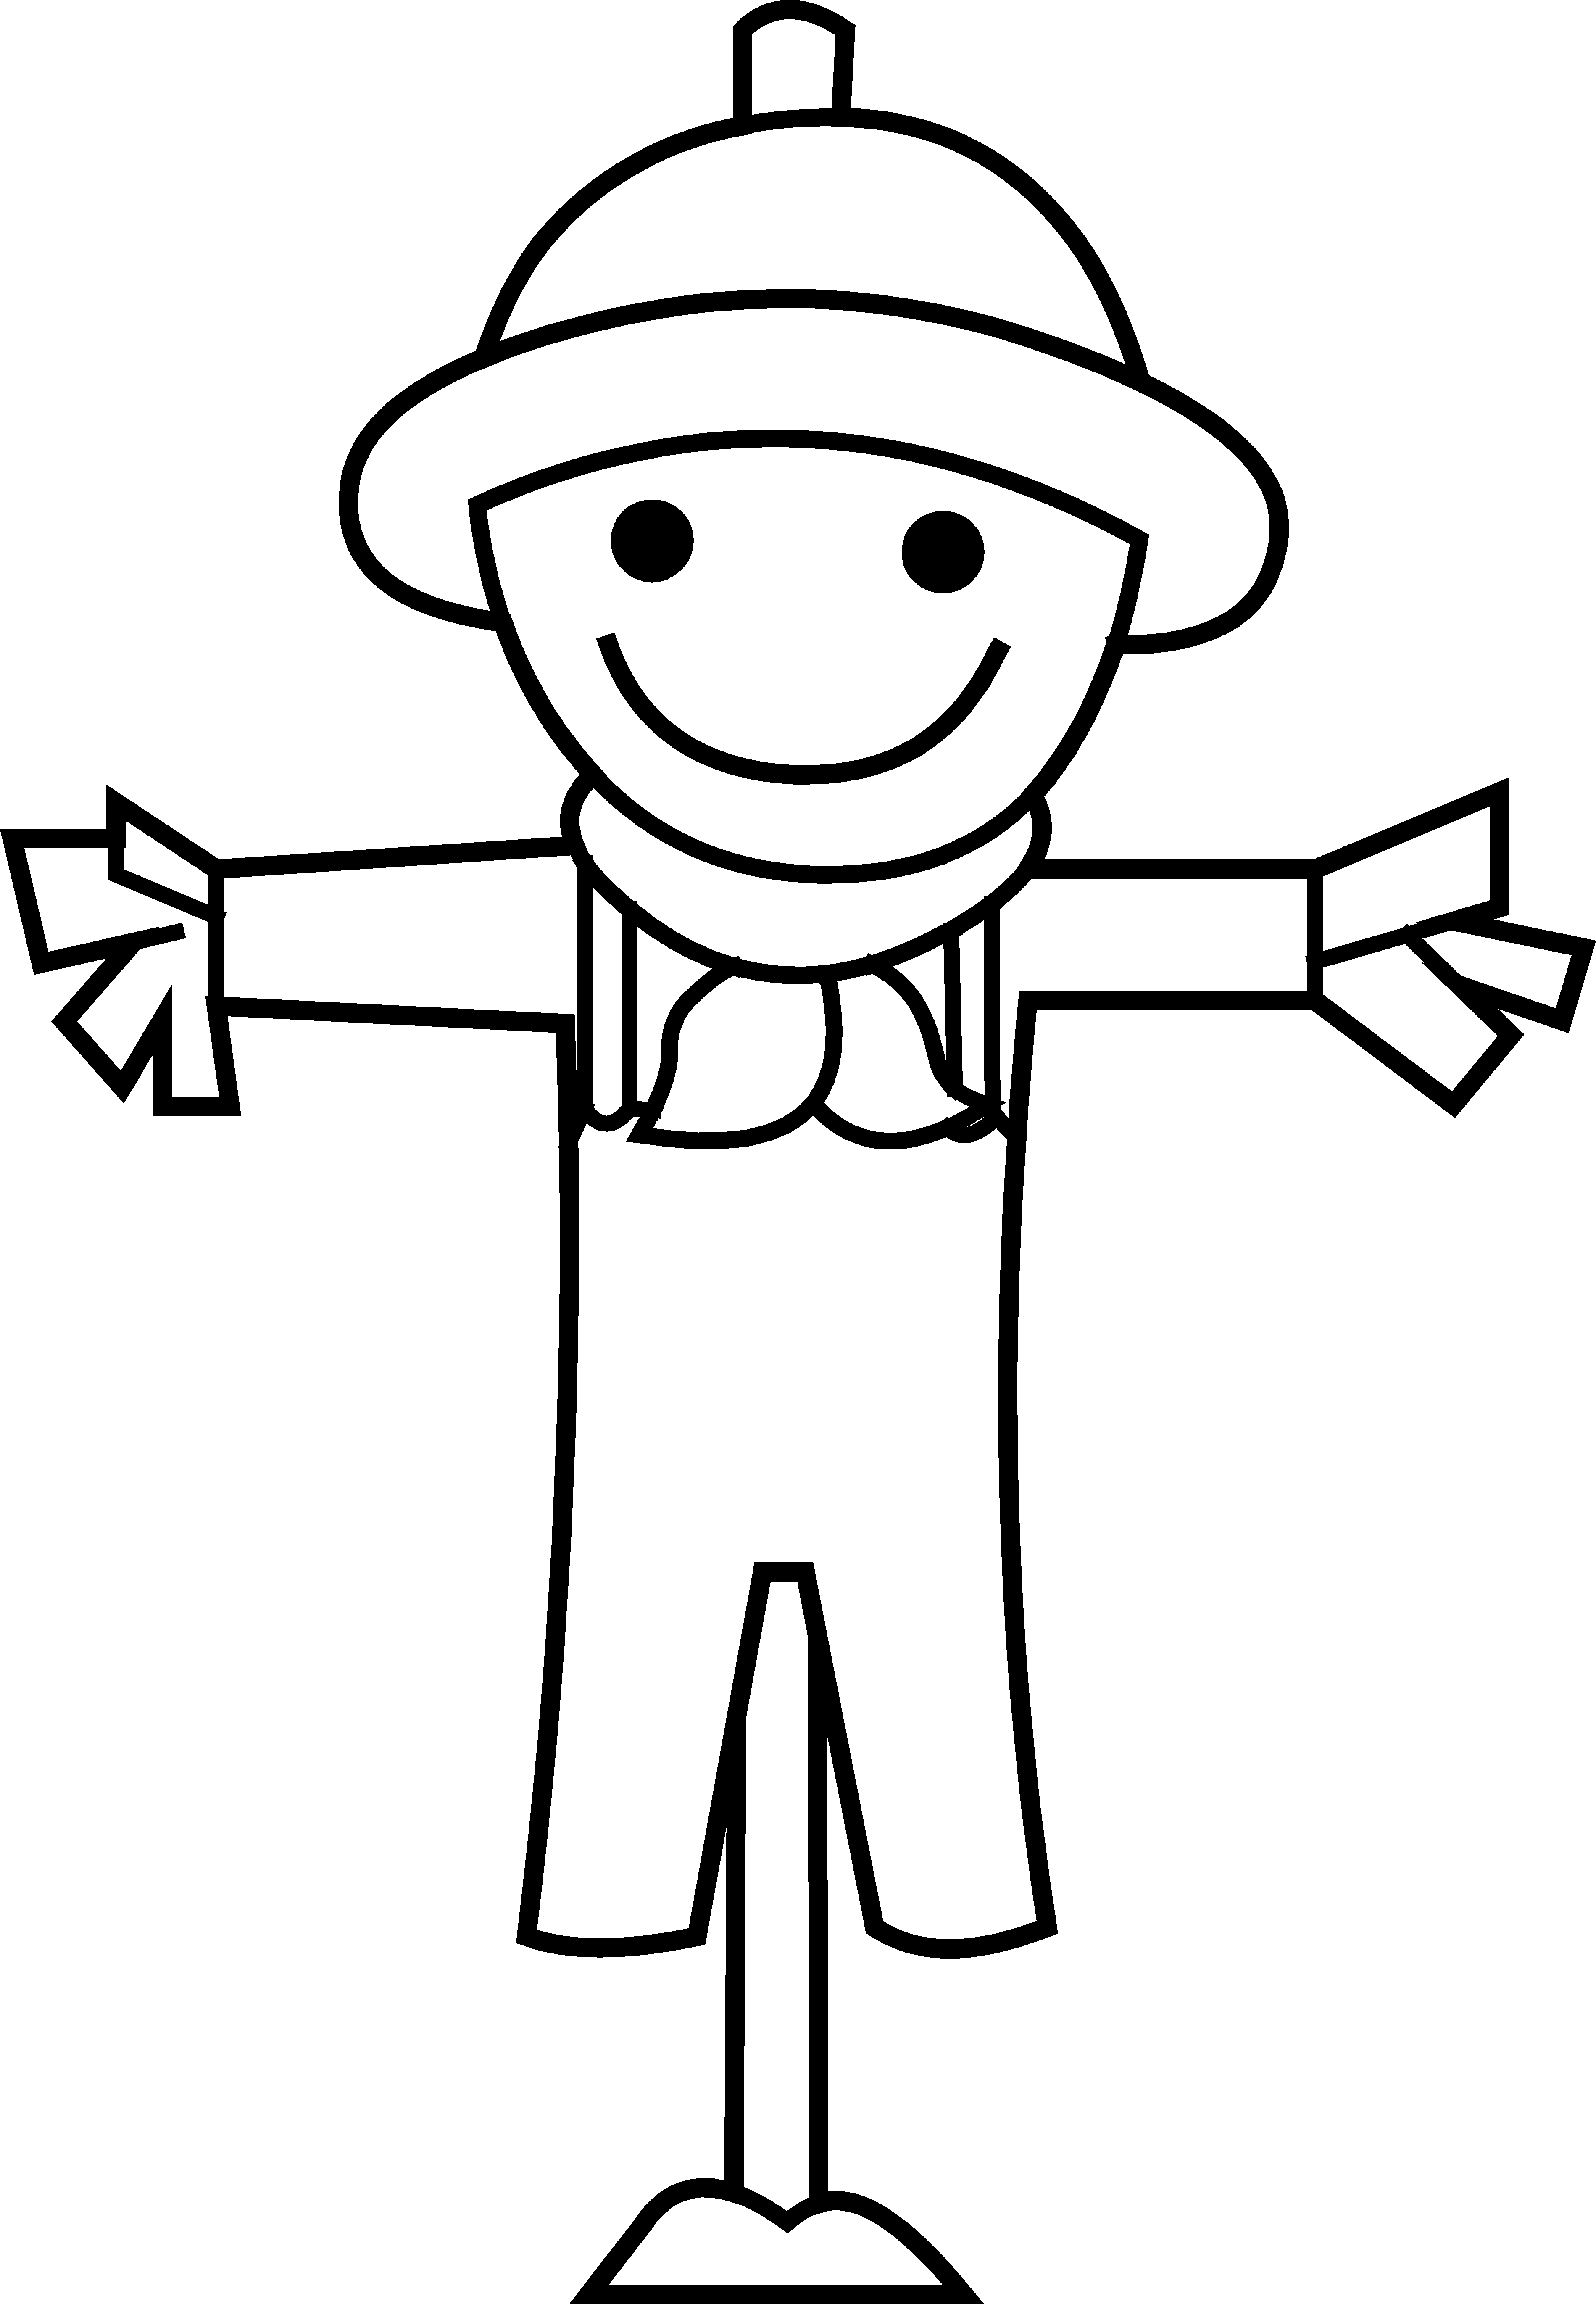 Scarecrow clipart scarecrow costume.  collection of face